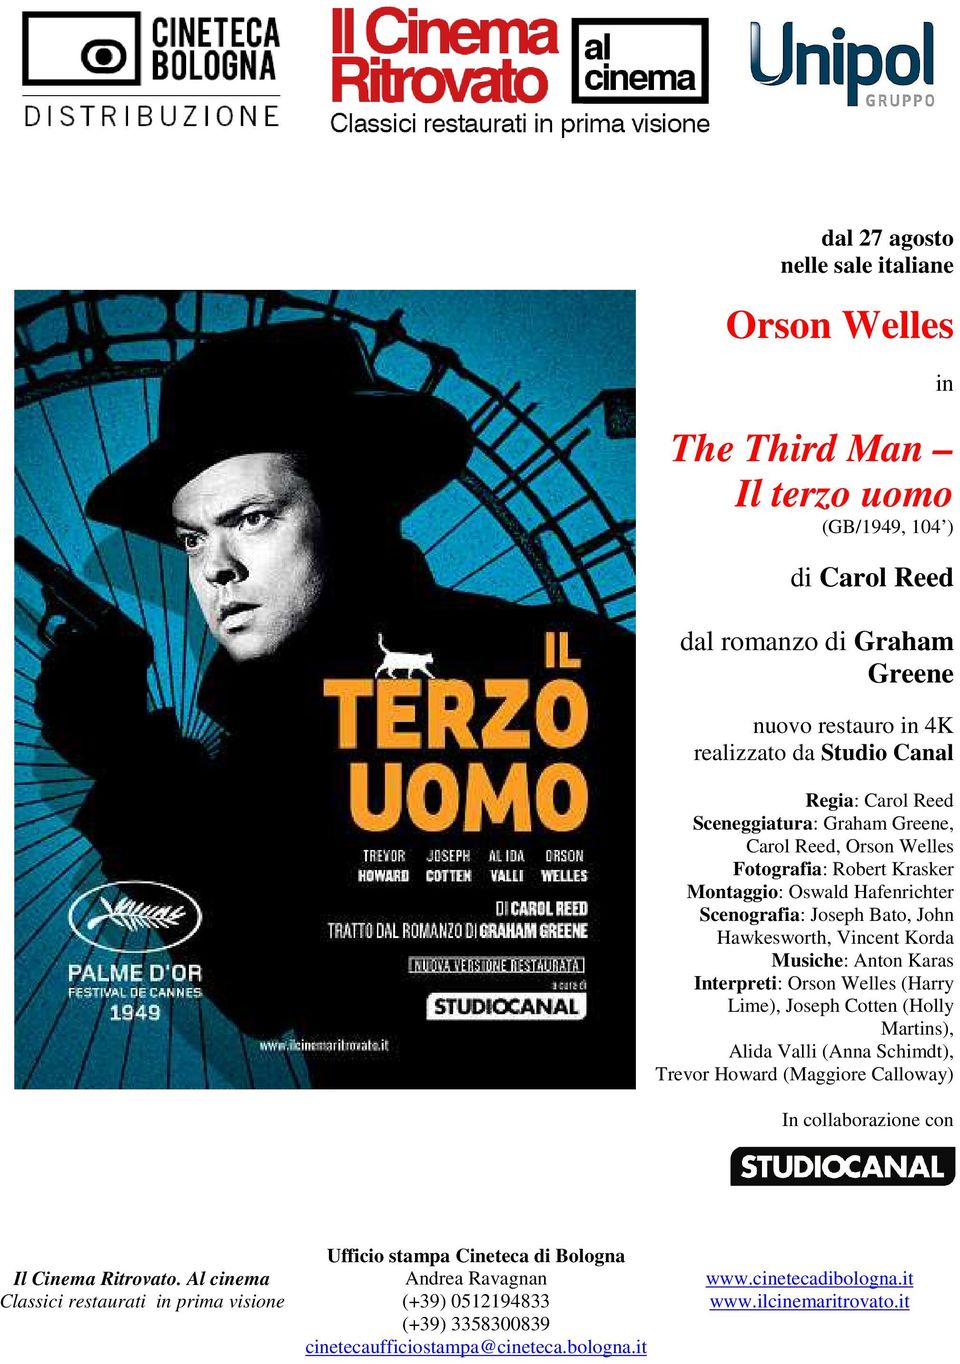 Interpreti: Orson Welles (Harry Lime), Joseph Cotten (Holly Martins), Alida Valli (Anna Schimdt), Trevor Howard (Maggiore Calloway) In collaborazione con Il Cinema Ritrovato.